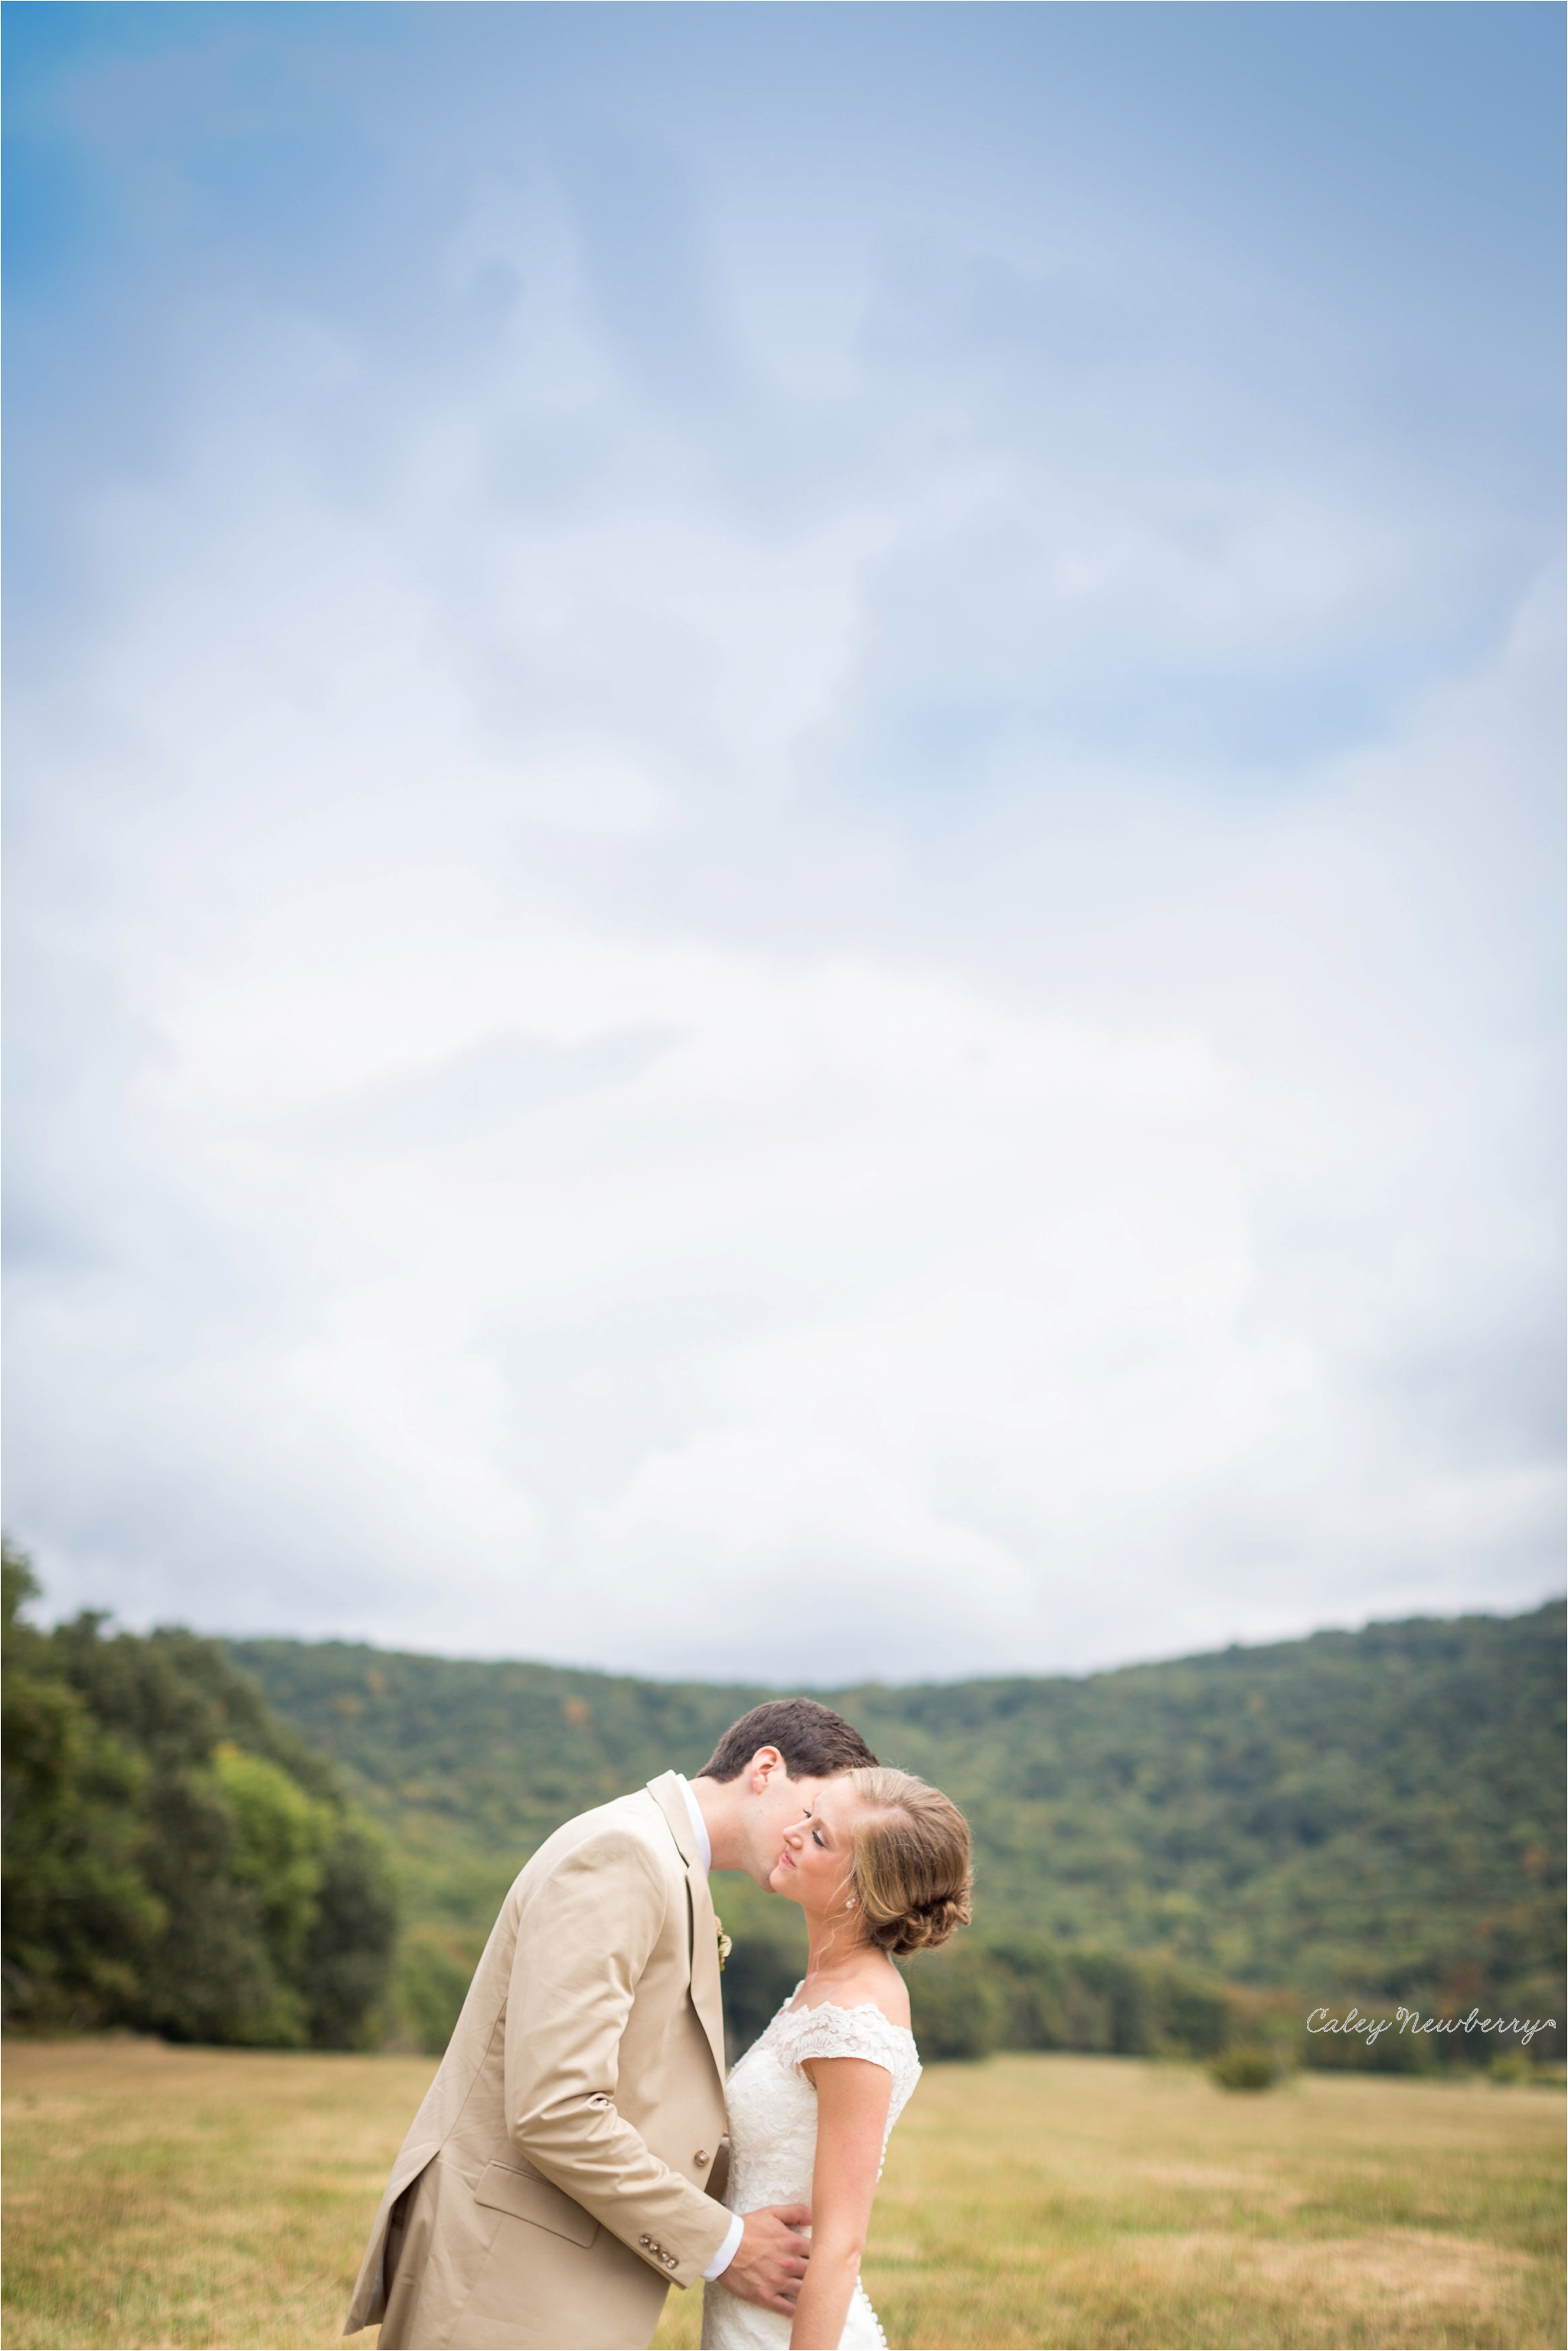 caley-newberry-huntsville-wedding-photographer